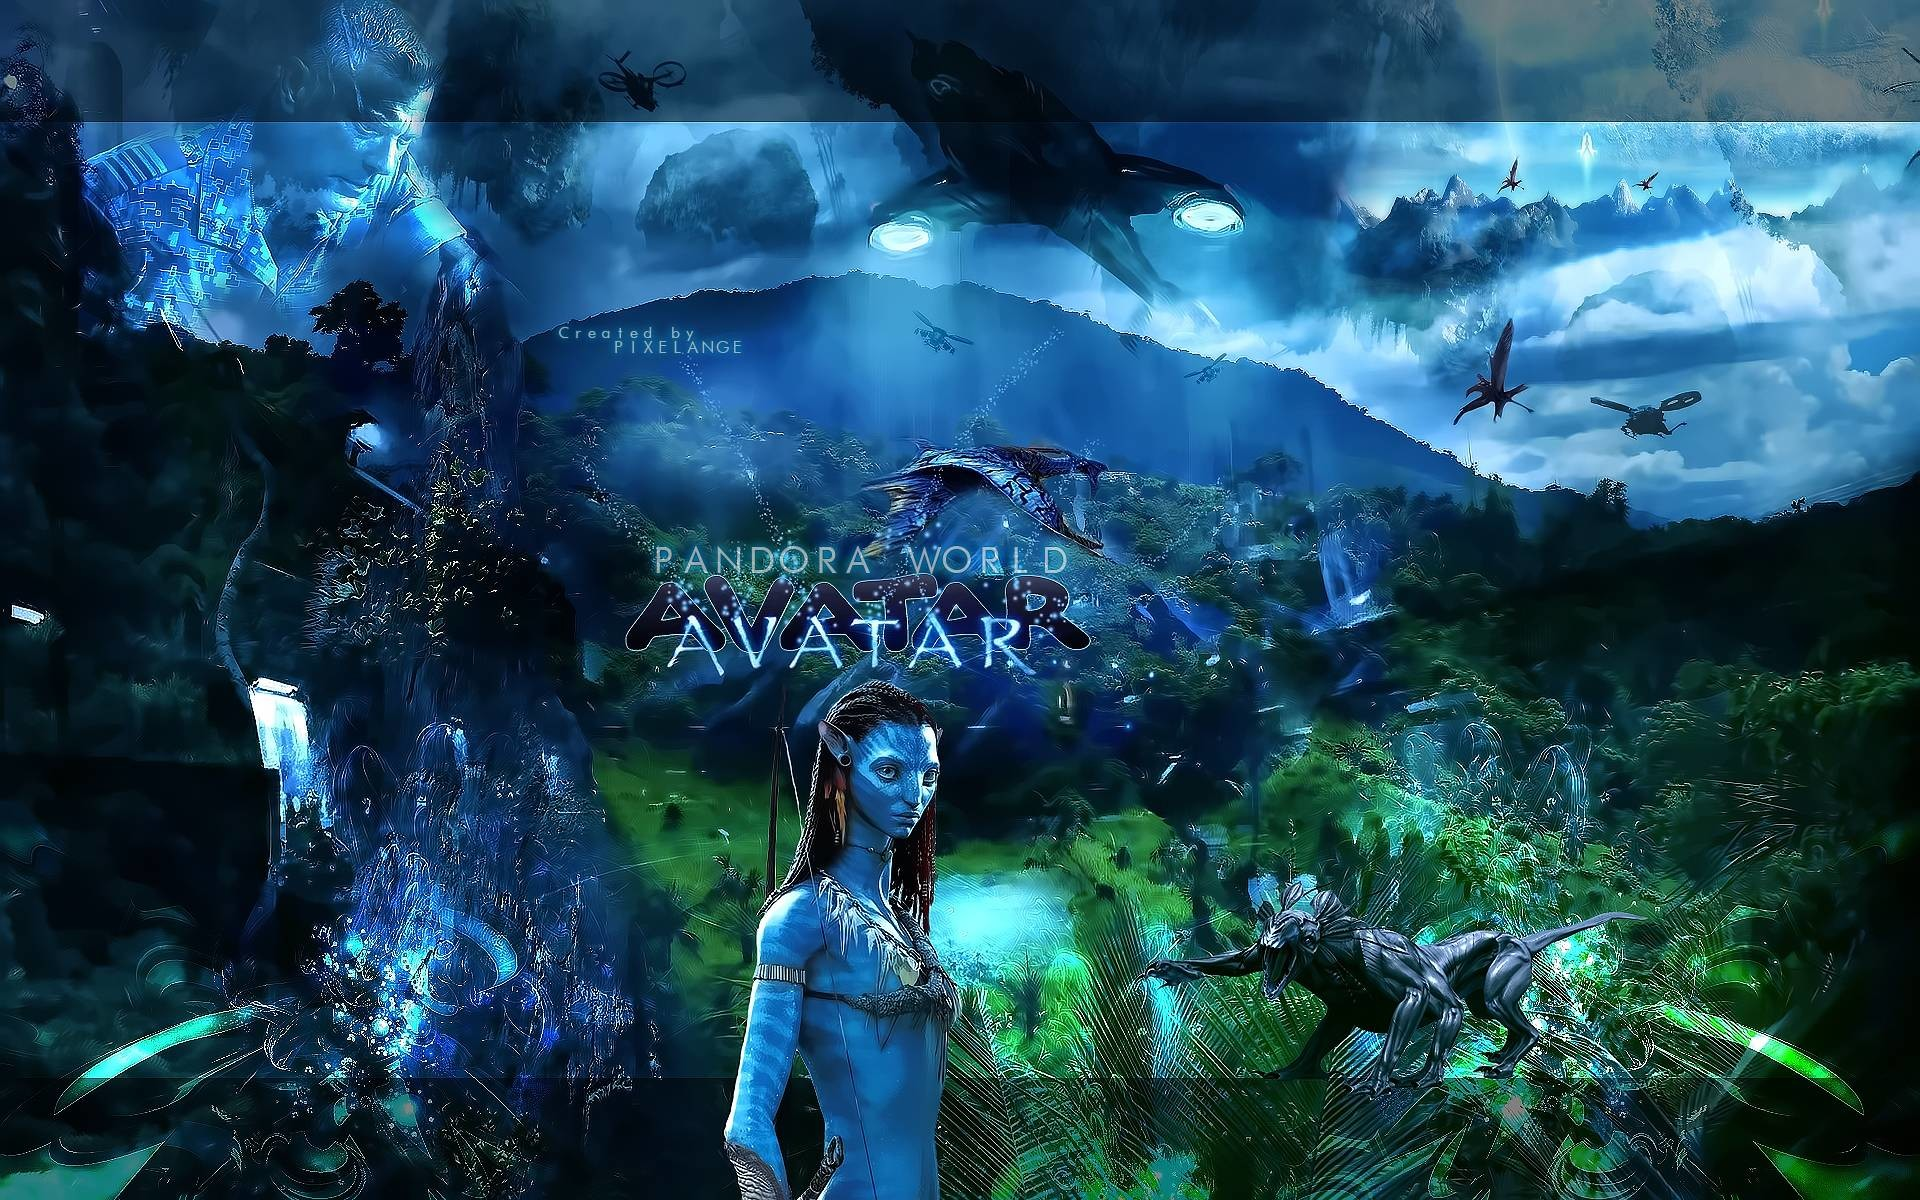 1920x1200 Avatar Movie Nature Wallpaper Hd Background 9 HD Wallpapers .